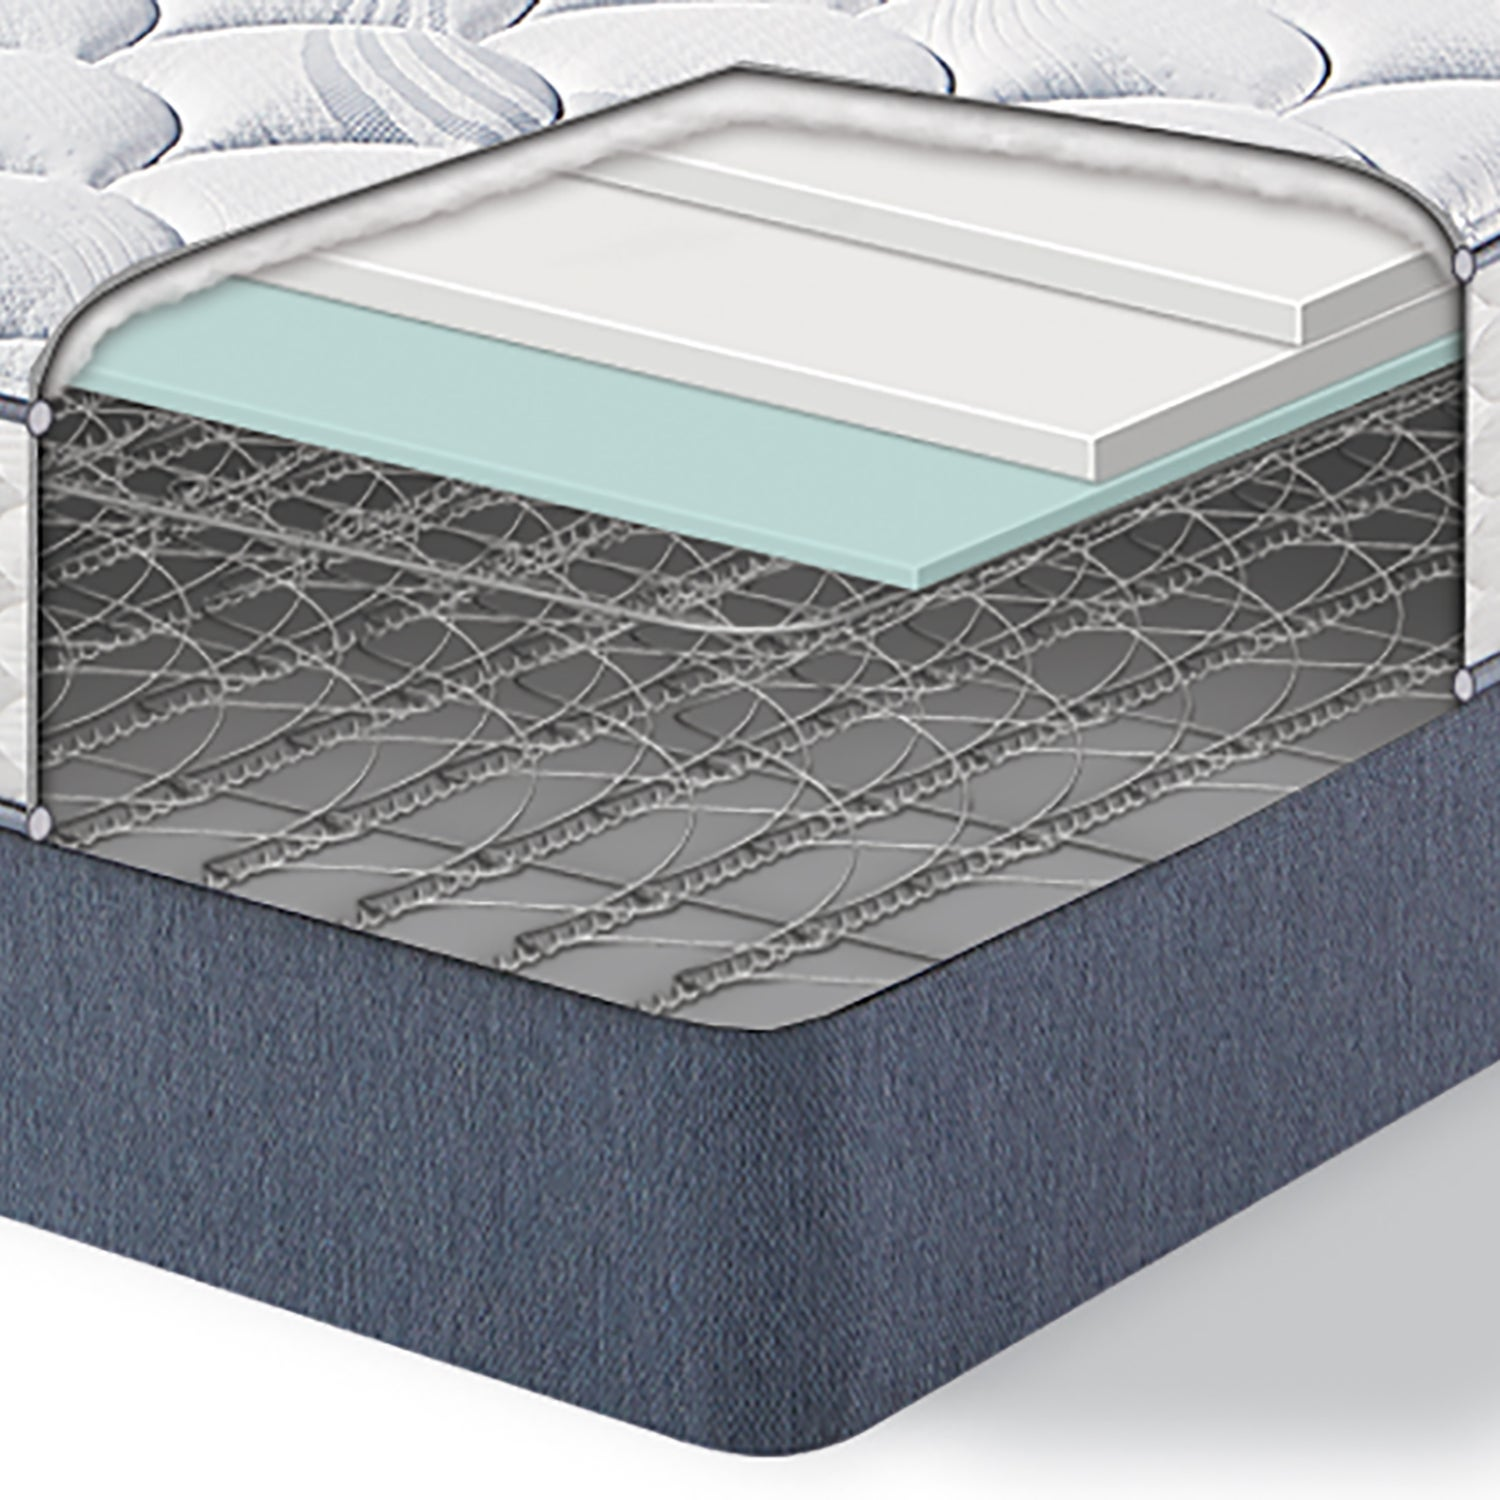 discount glenrose mattress serta tampa perfect outlet sleeper